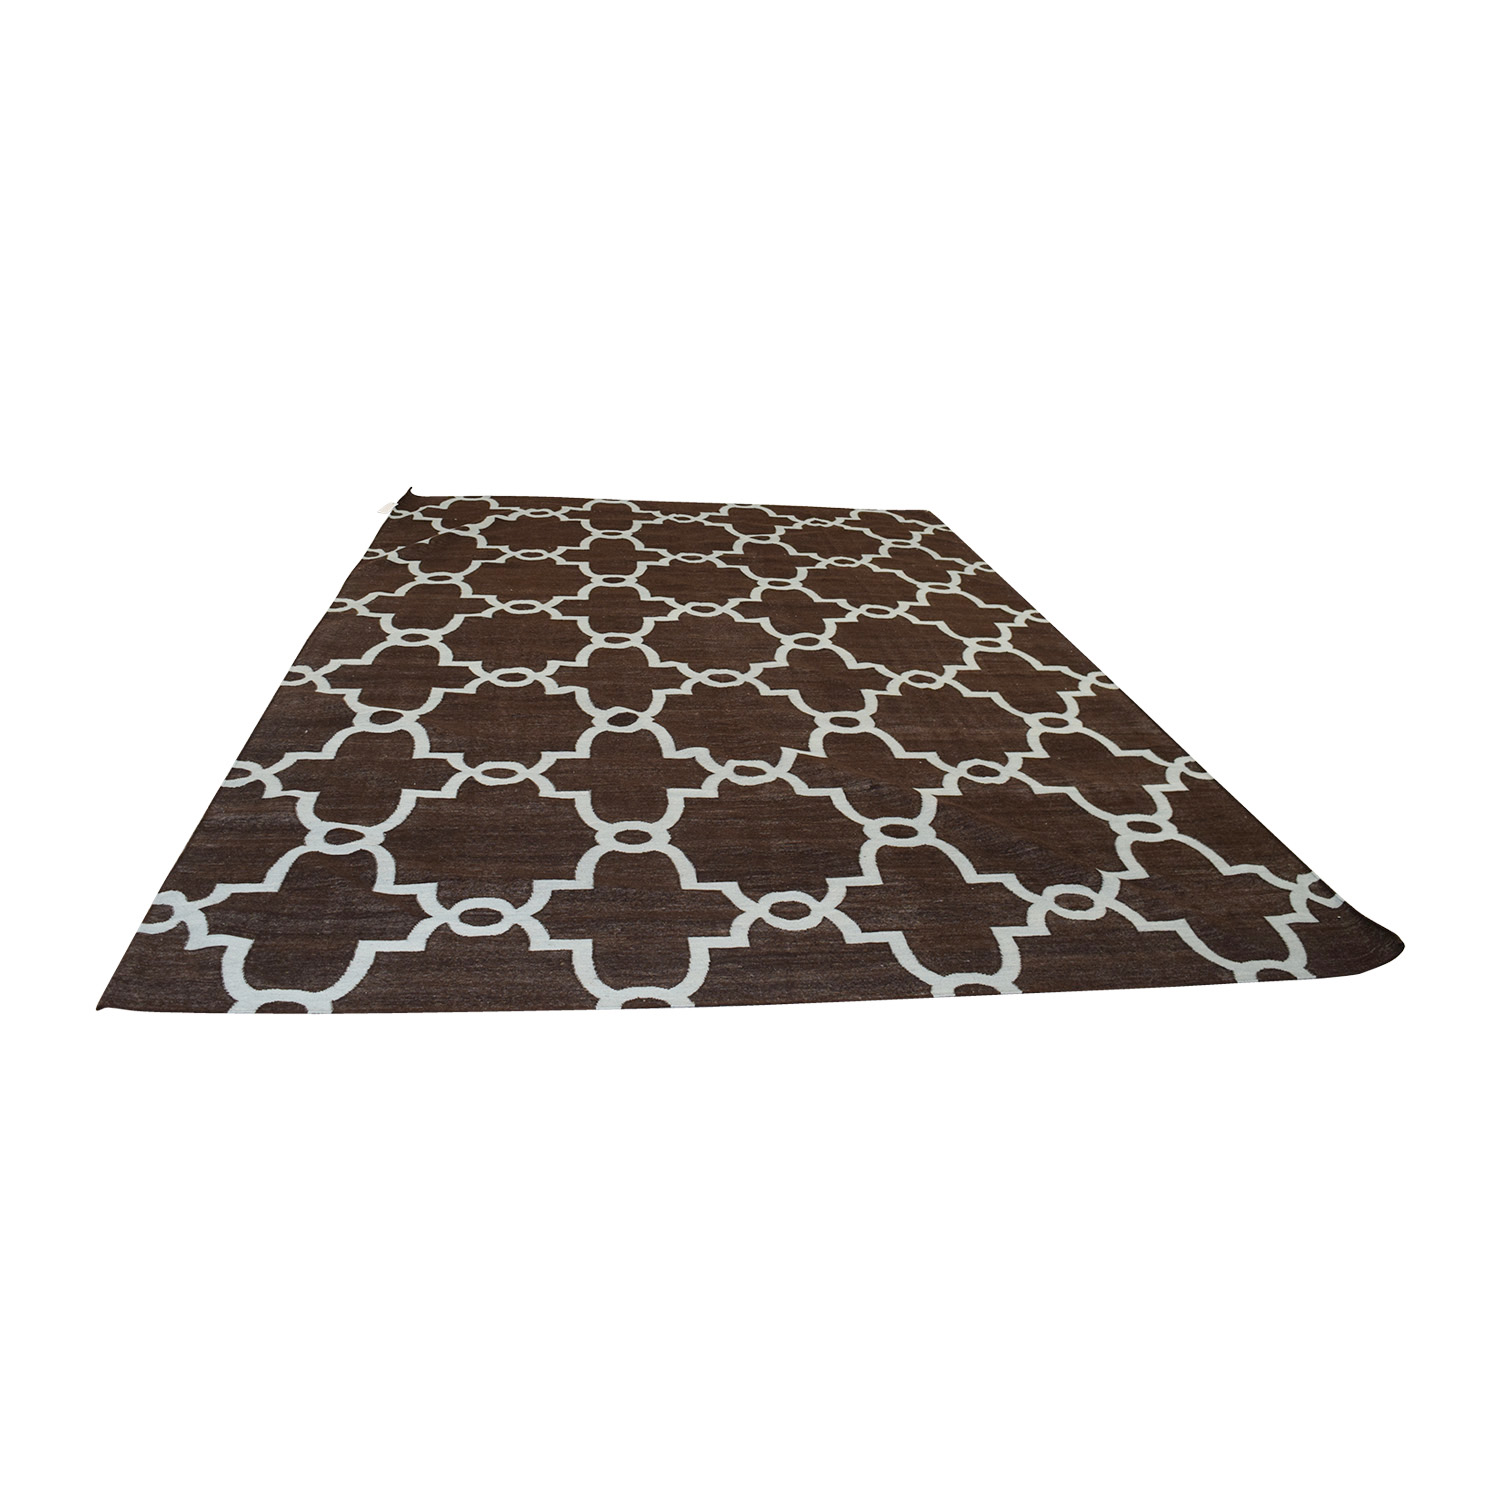 shop Obeetee Brown Dhurrie Hand Knotted Wool Rug Obeetee Decor